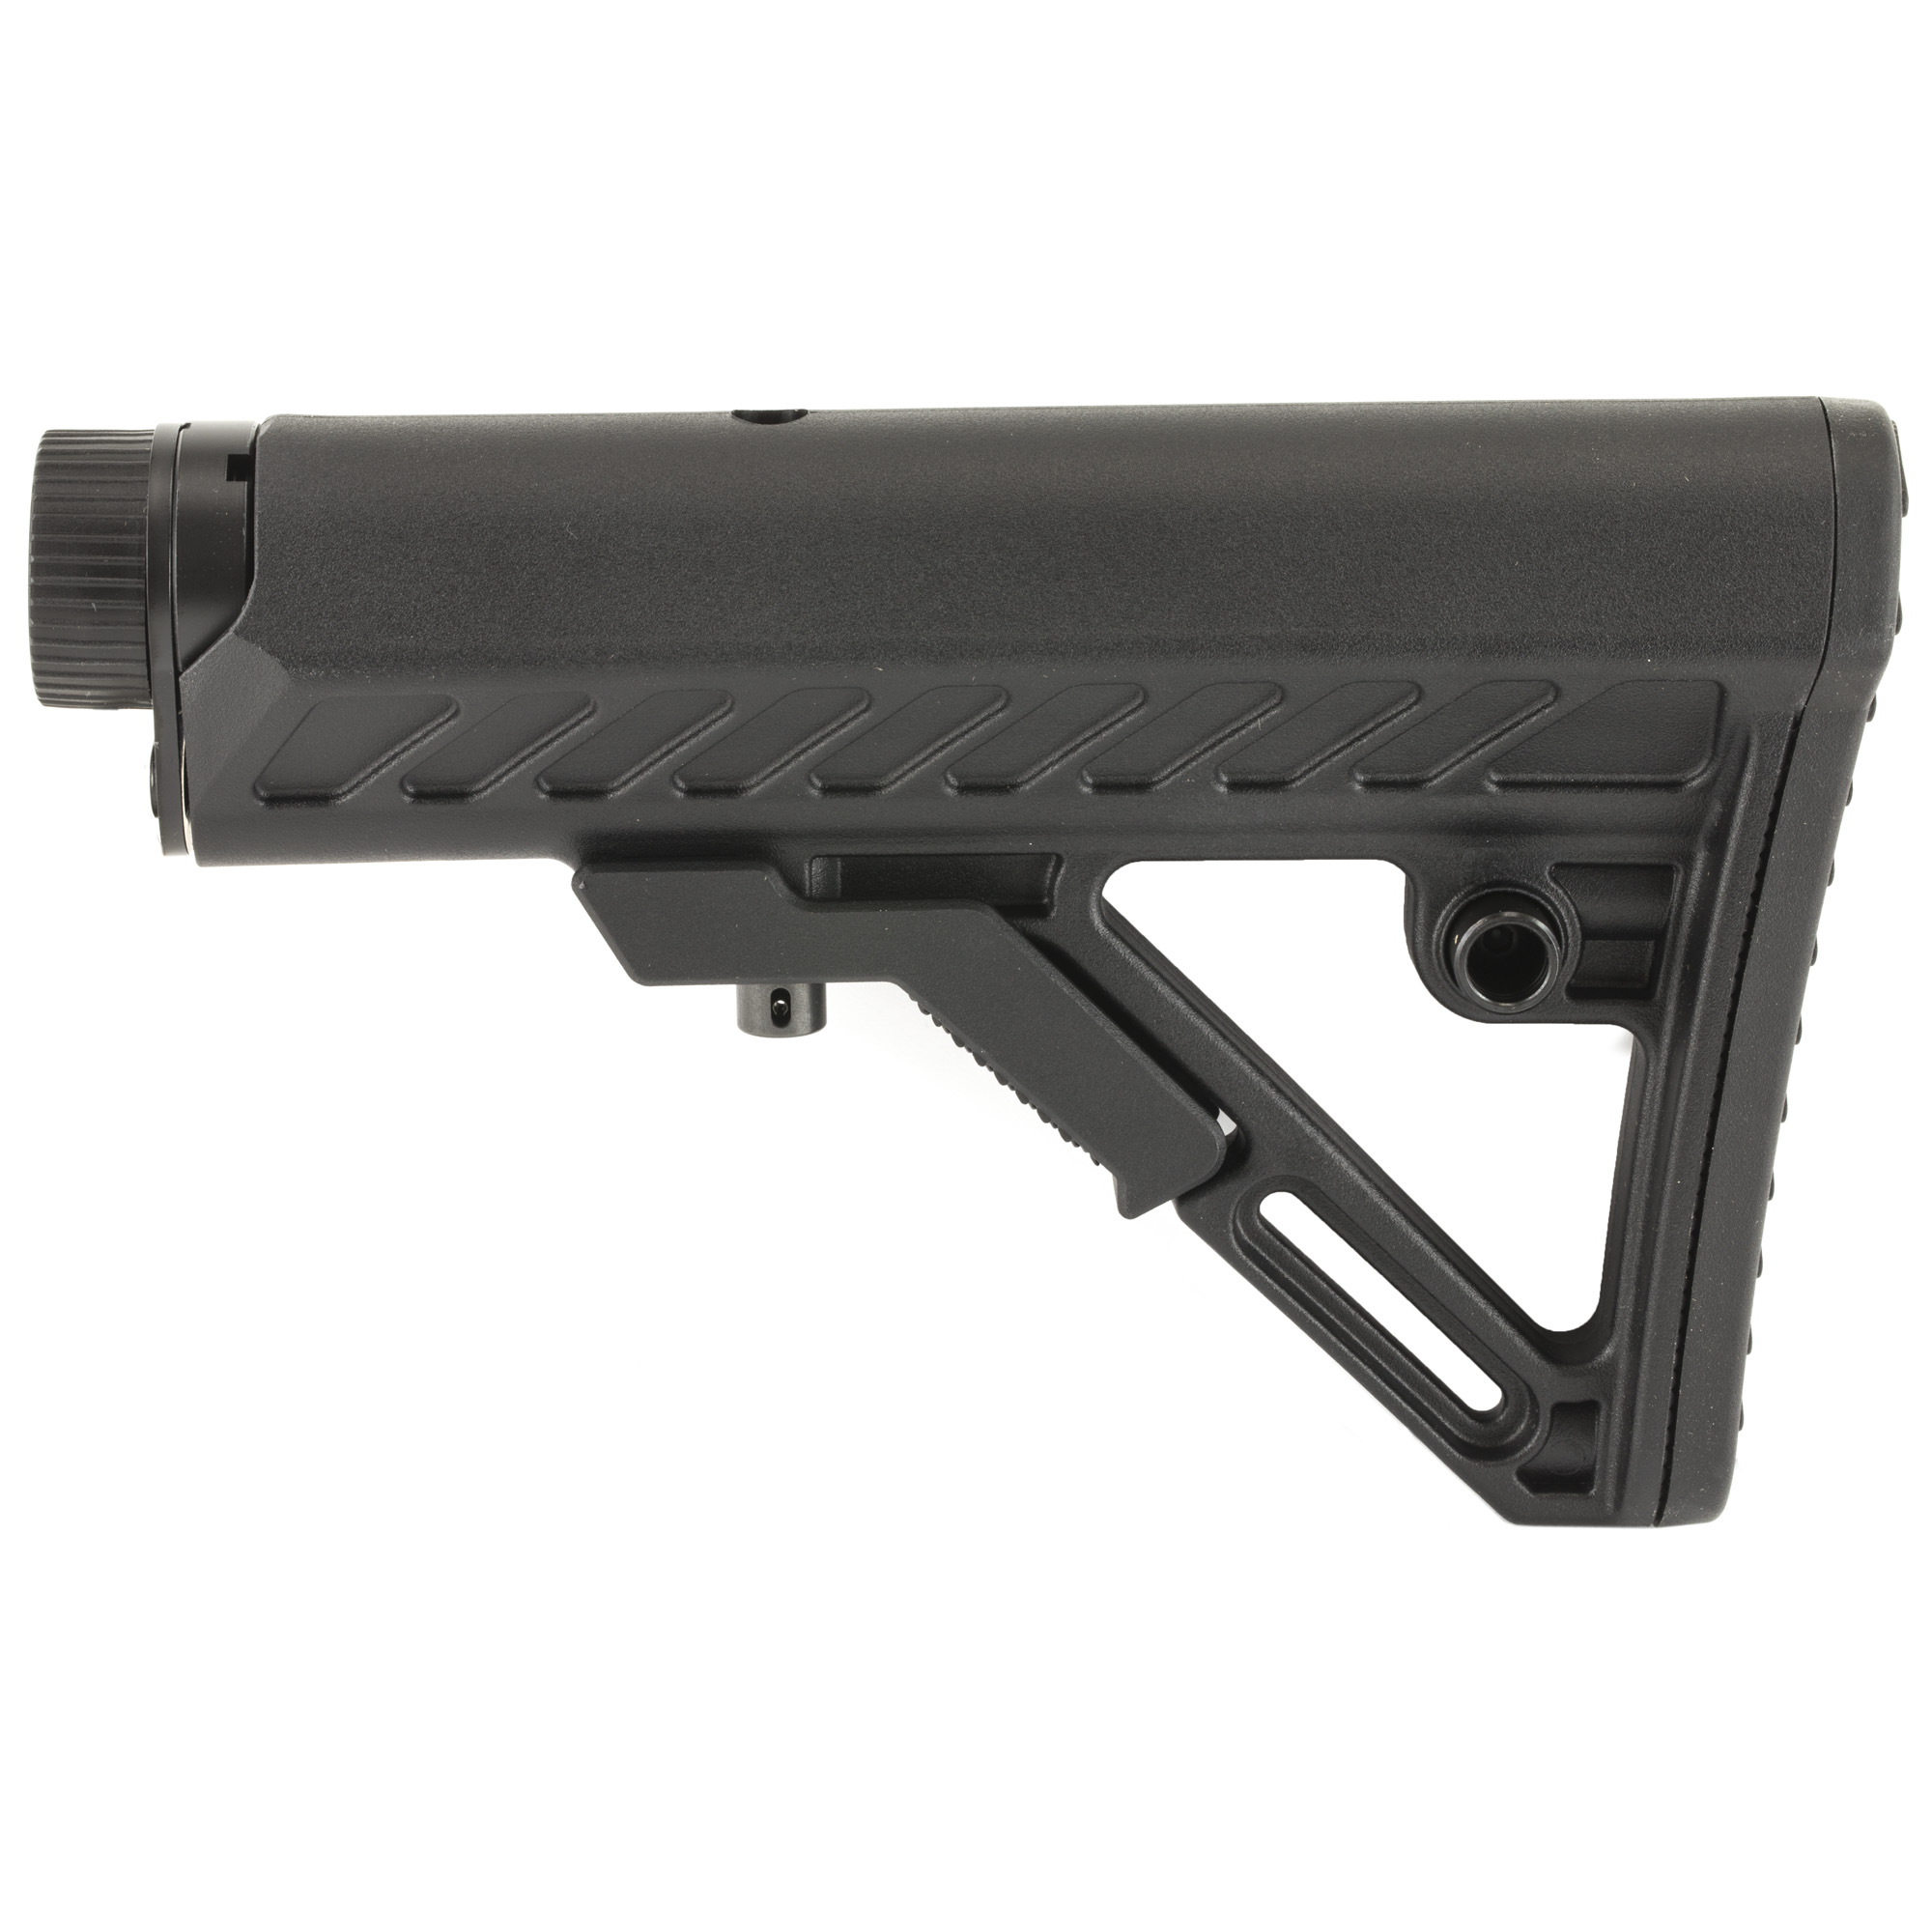 """The Leapers UTG AR-15 PRO Model 4 Ops Ready S2 Stock is molded from high impact reinforced polymer materials. It features an ergonomically chamfered rubberized butt pad and a slanted cheek rest that enhances shooting stability and consistent firearm control. The stock has an integral sling loop and ambidextrous QD sling swivel housing. Lightweight and super slim"""" the stock has fully dehorned corners and melted contours for snag-free use. This kit includes a Mil-Spec receiver extension tube machined from aircraft aluminum with proper Mil-Spec rolled threads. The tube is hard coat anodized for corrosion and wear resistance."""